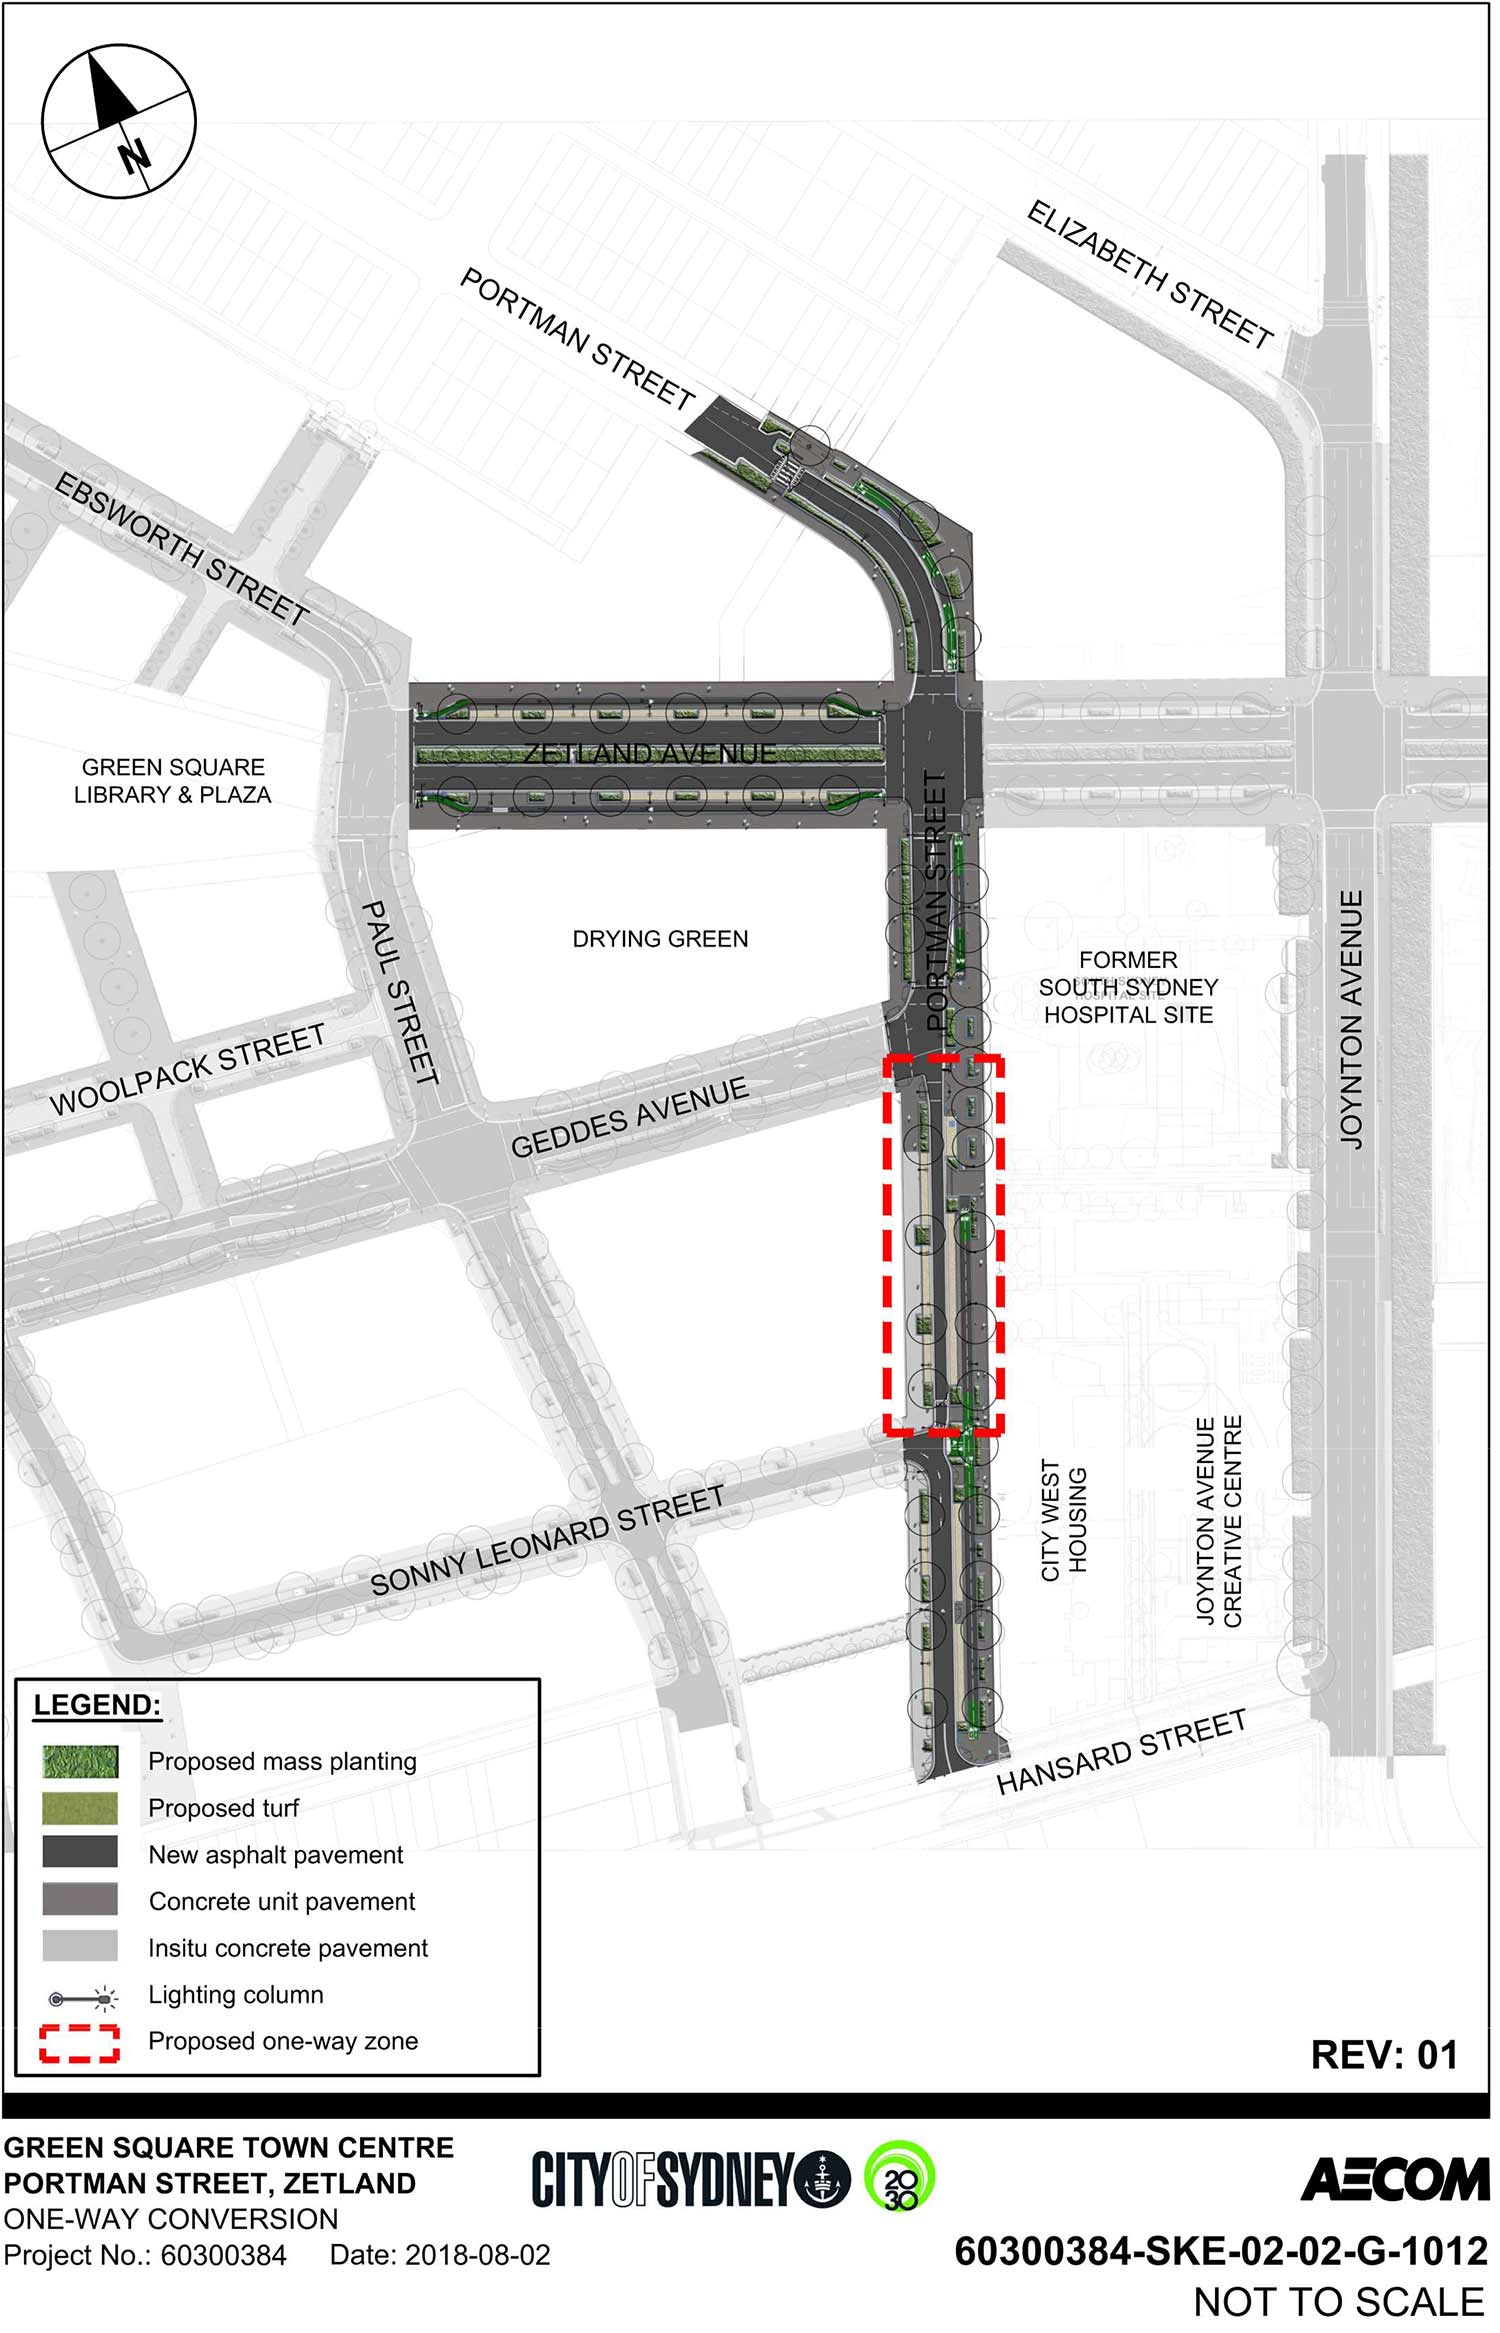 Map illustrating proposed upgrade to Portman Street south. Map shows proposed areas of mass planting, turf, new asphalt pavement, concrete unit pavement and insitu concrete pavement on Zetland Avenue, between Portman Street and Paul Street and on Portman Street between Hansard Street and 82 Portman Street. Map also shows proposed one-way zone on Portman Street between Sonny Leonard Street and Geddes Avenue.